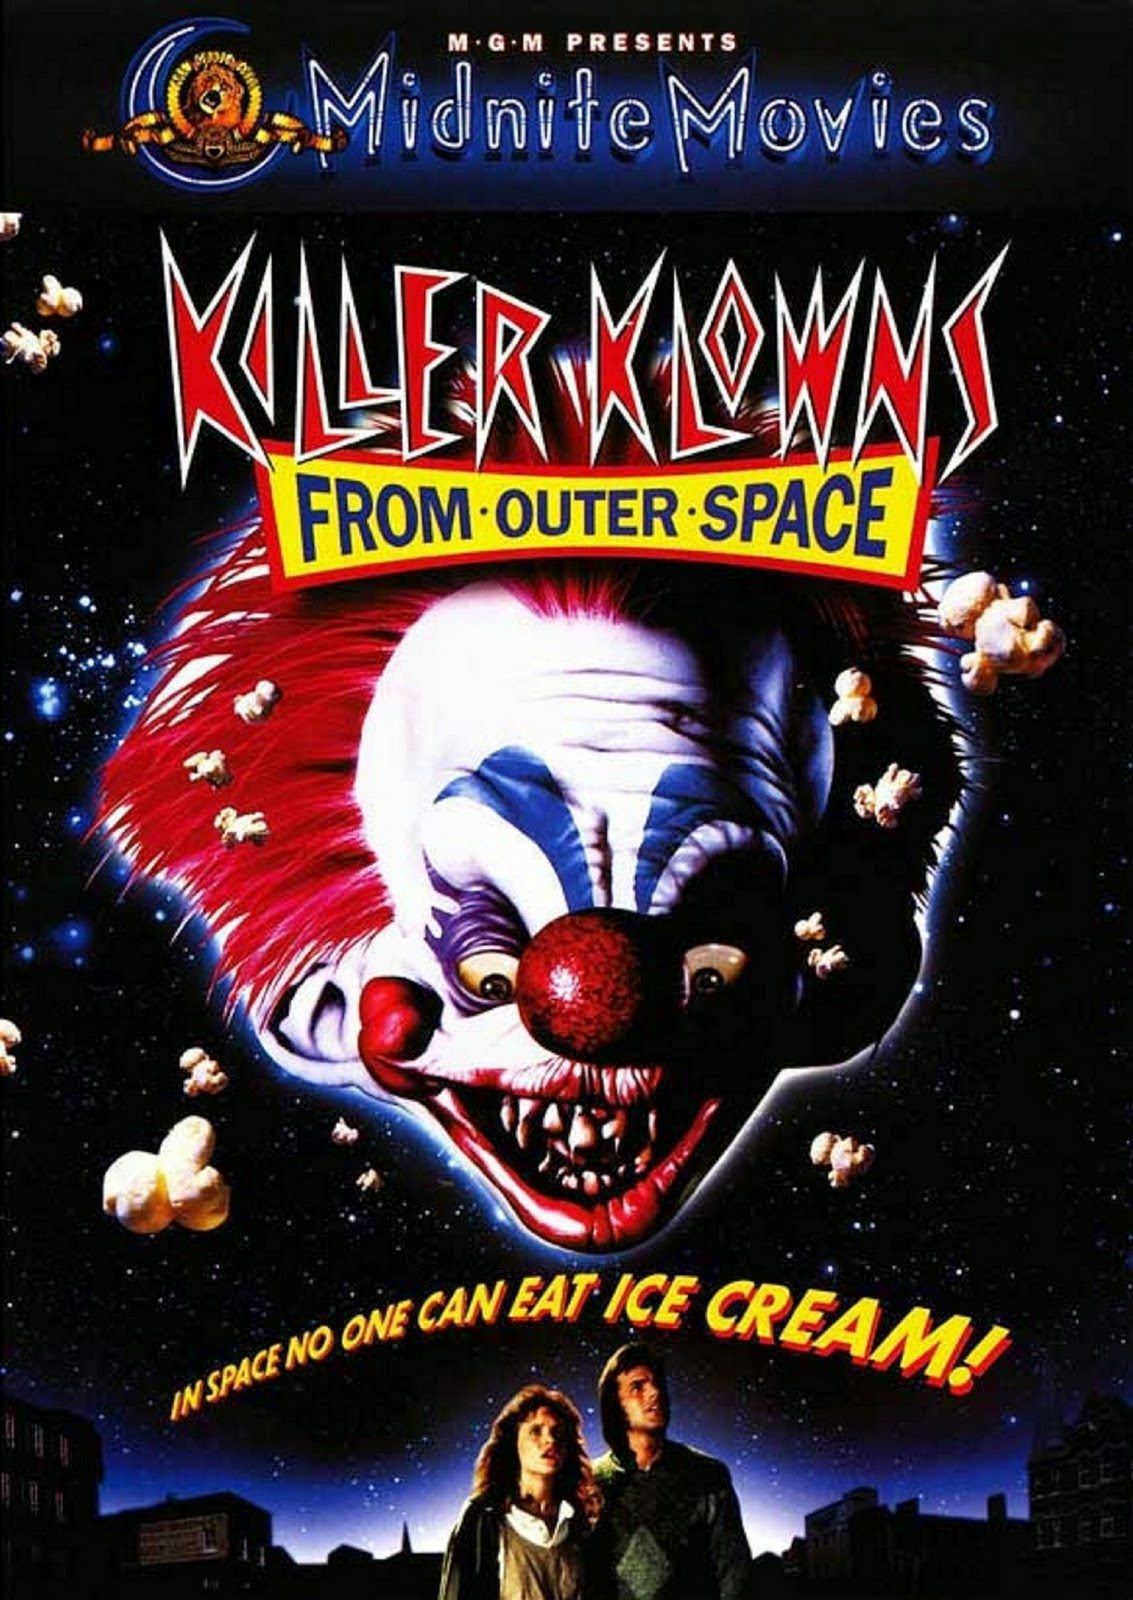 Chiodos bandnaam verklaring - Killer Klowns from Outer Space filmposter